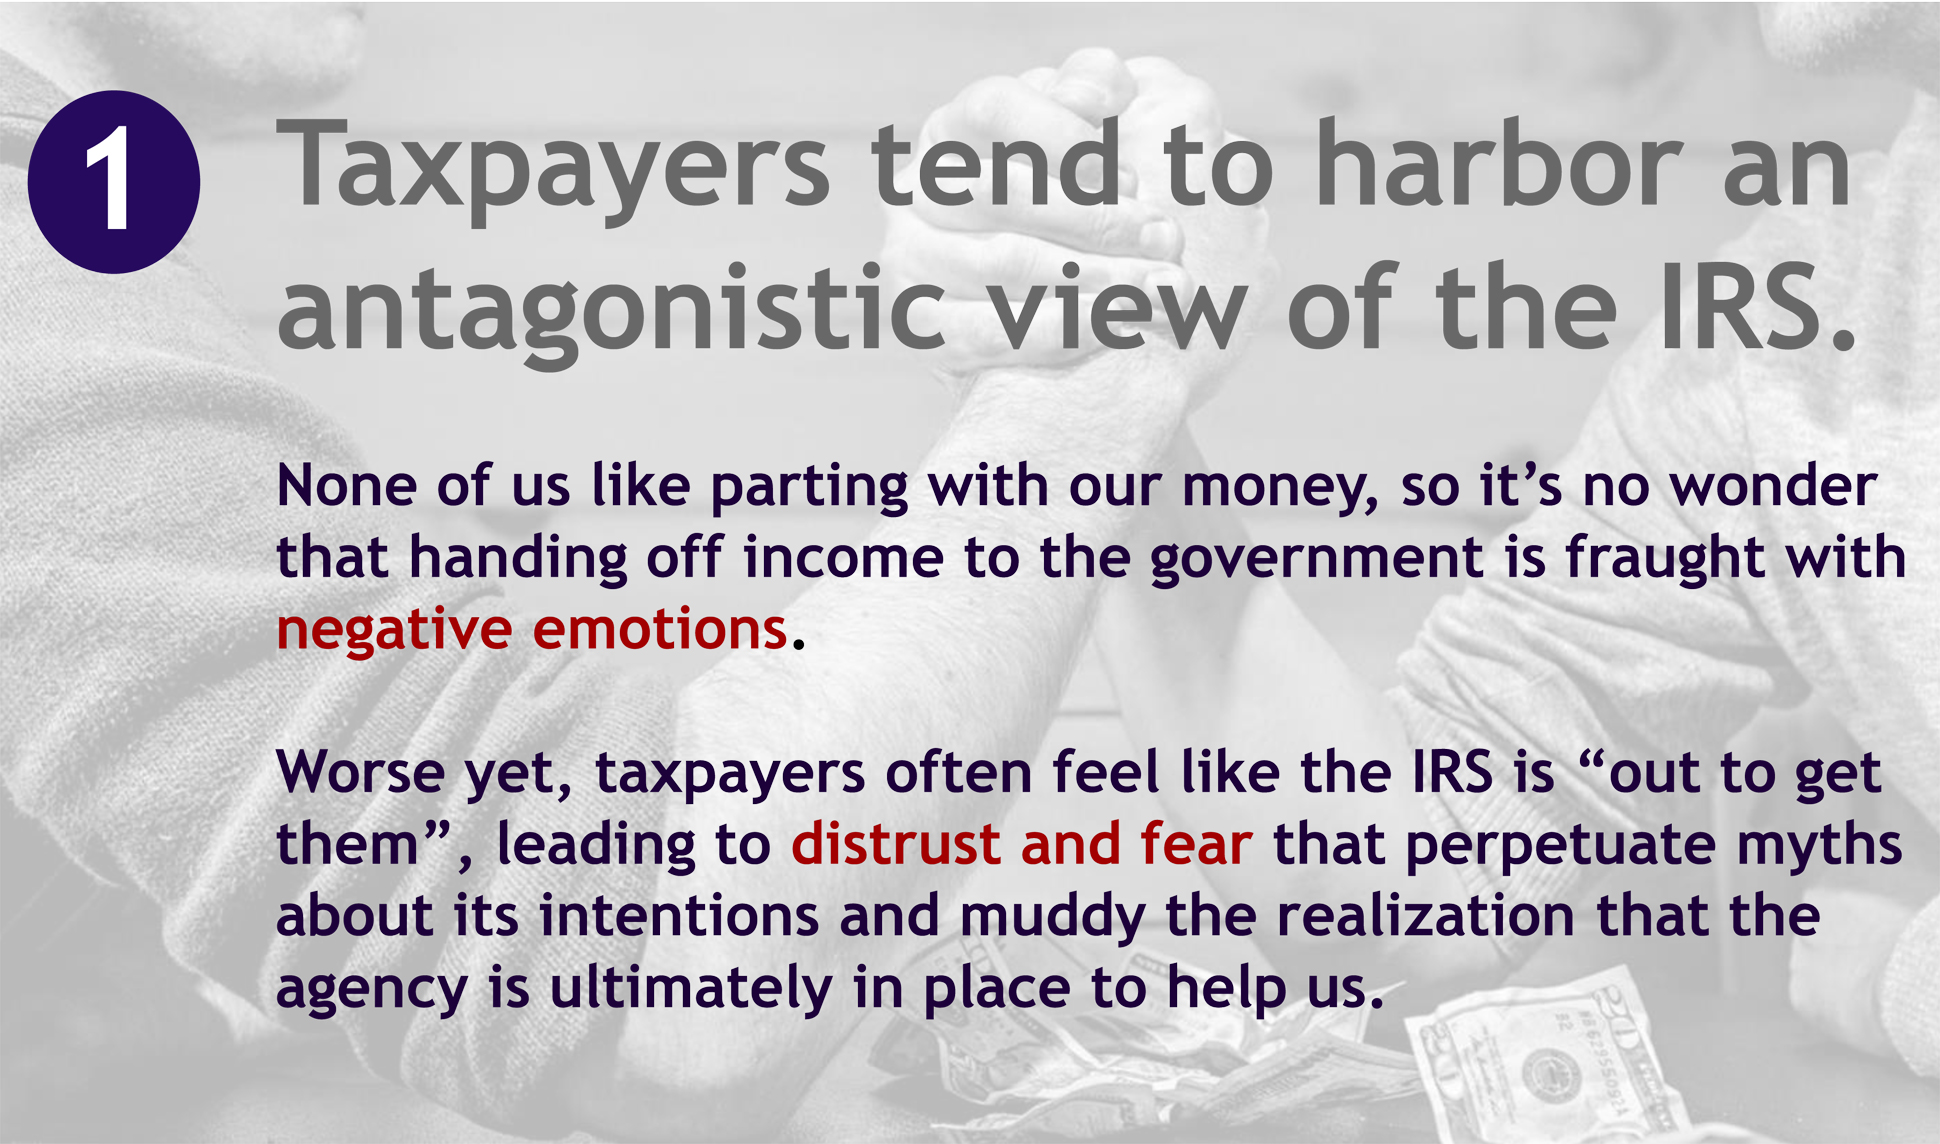 "A page from a tax design challenge submission. A first reason people don't like the IRS is provided by the submitter: ""Taxpayers tend to harbor an antagonistic view of the IRS."""